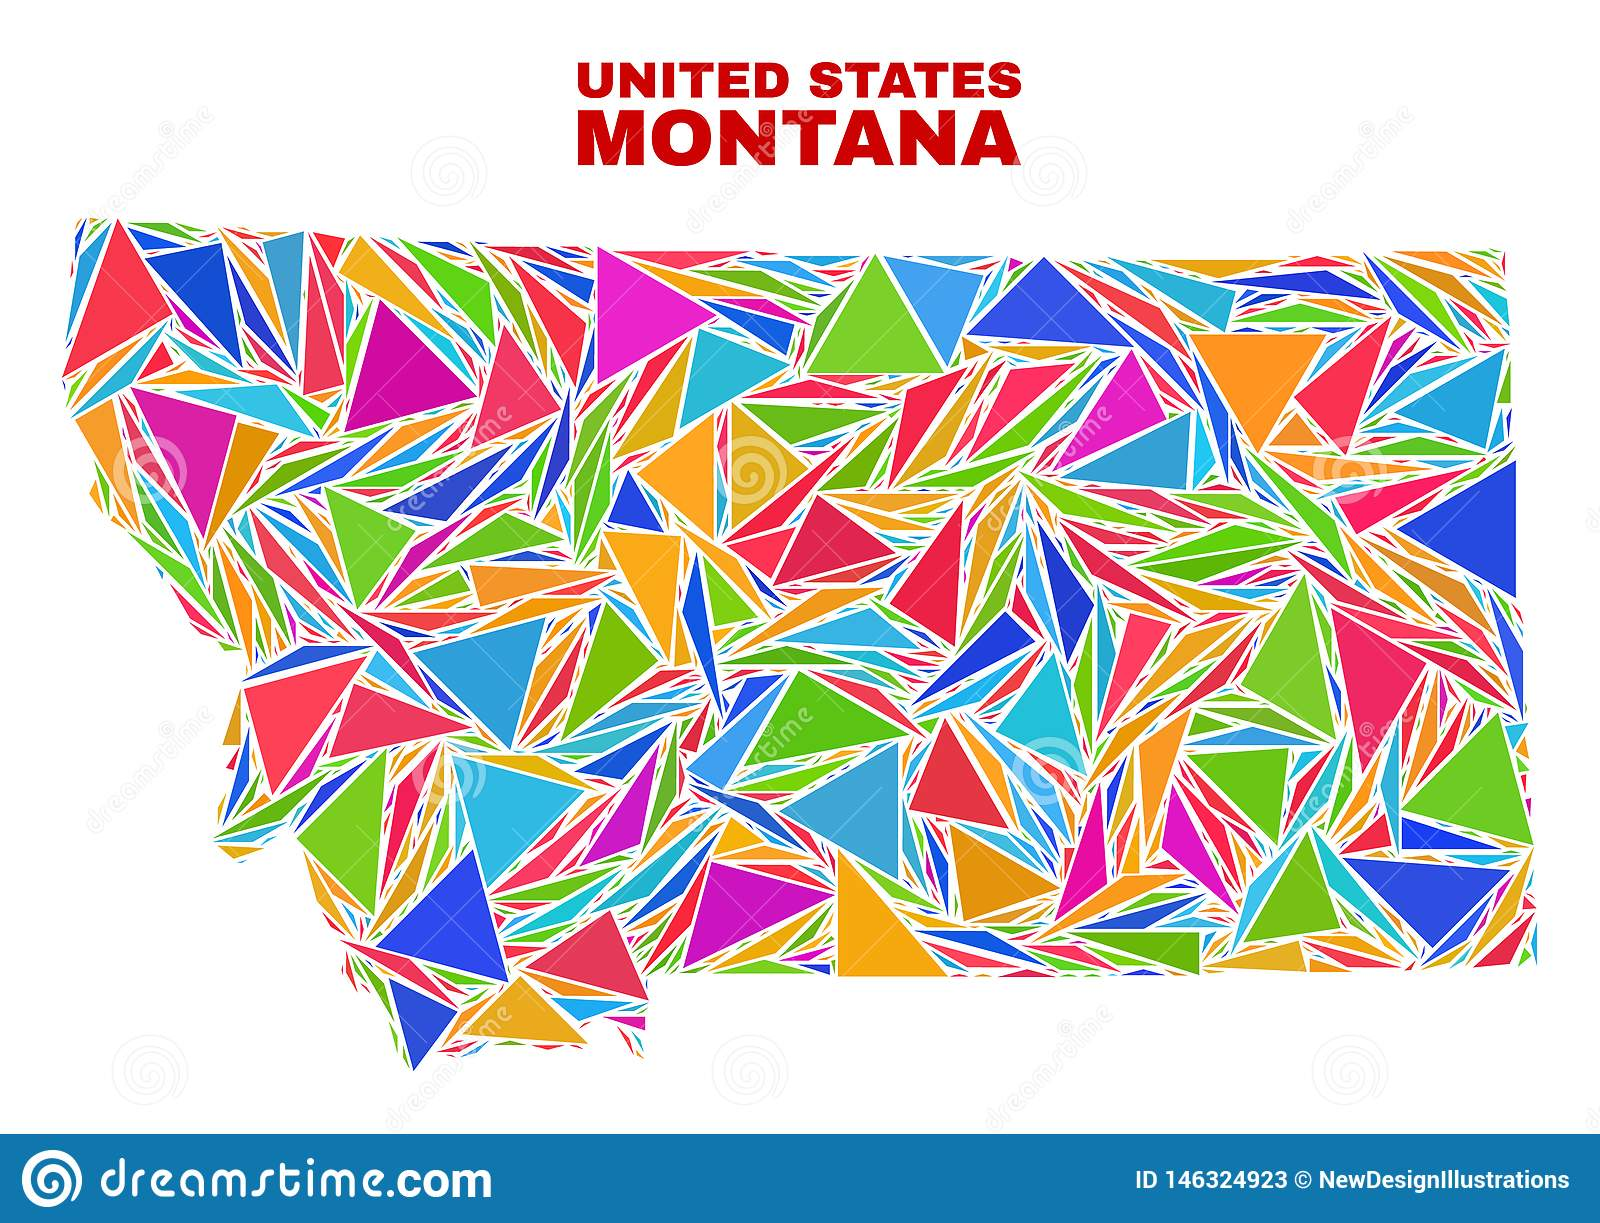 Montana State Map - Mosaic Of Color Triangles Stock Vector ...